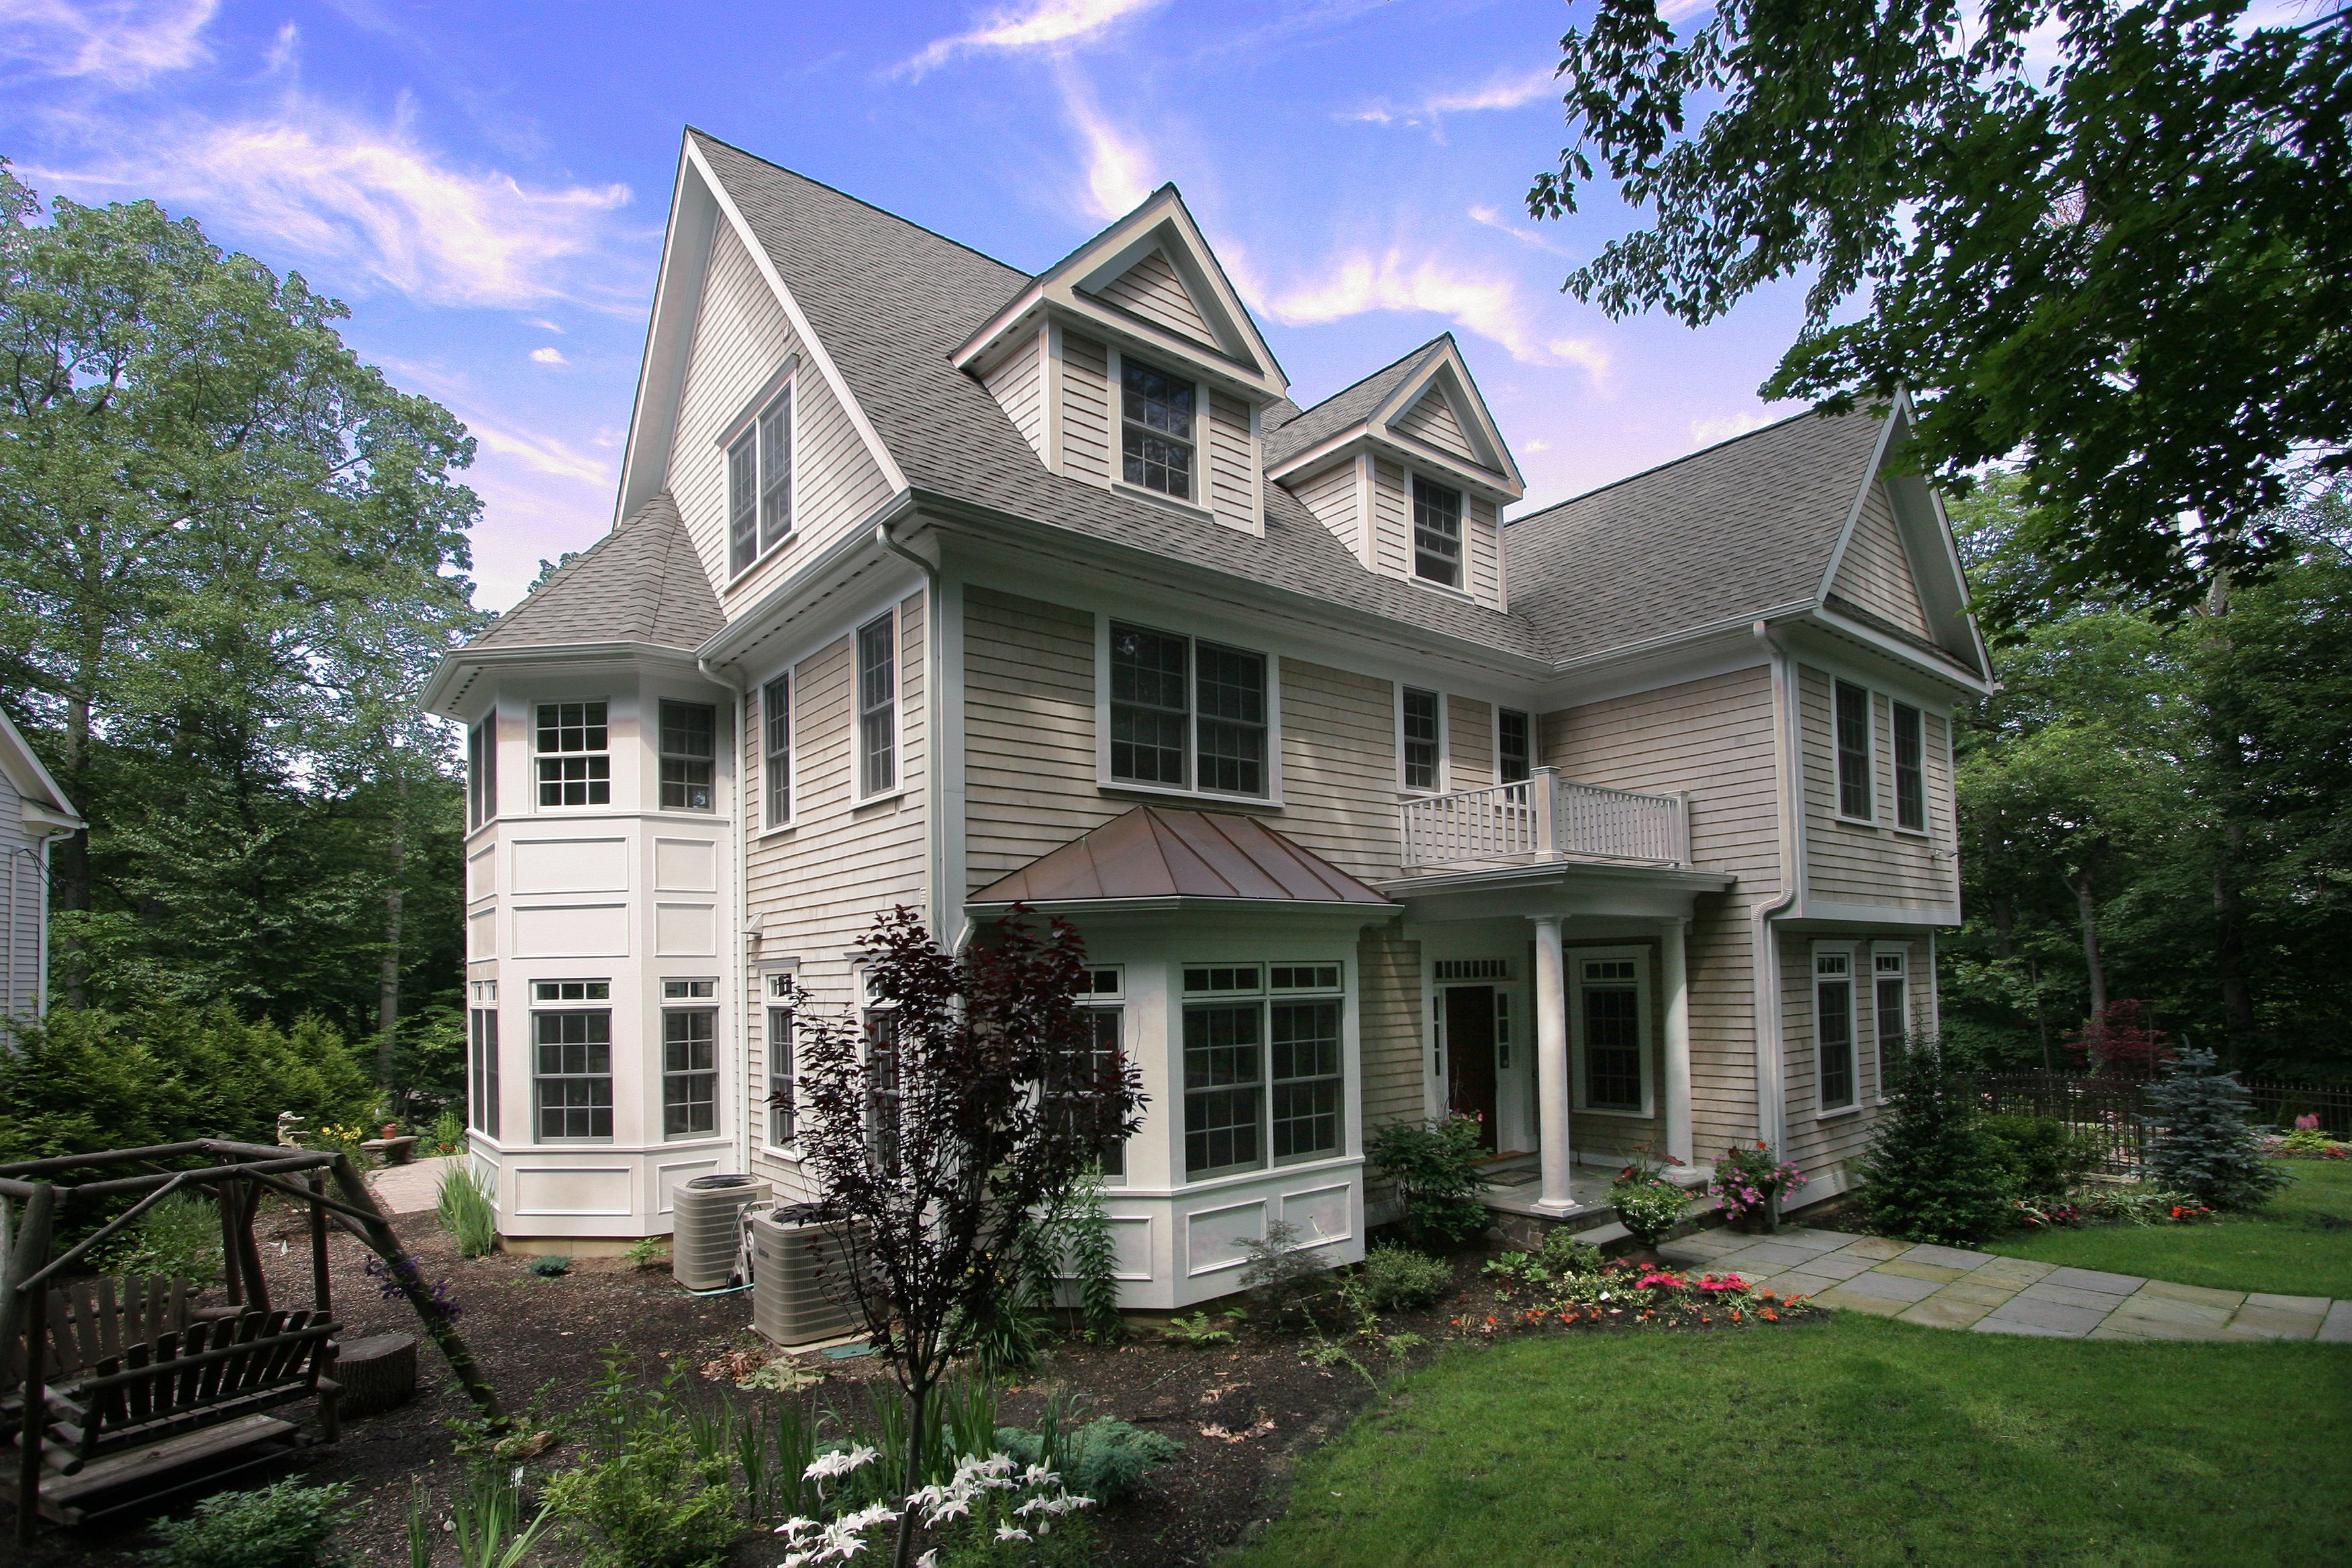 high performance home - Westport, Fairfield, Stamford, Greenwich, Danbury CT - SIP Building Solutions